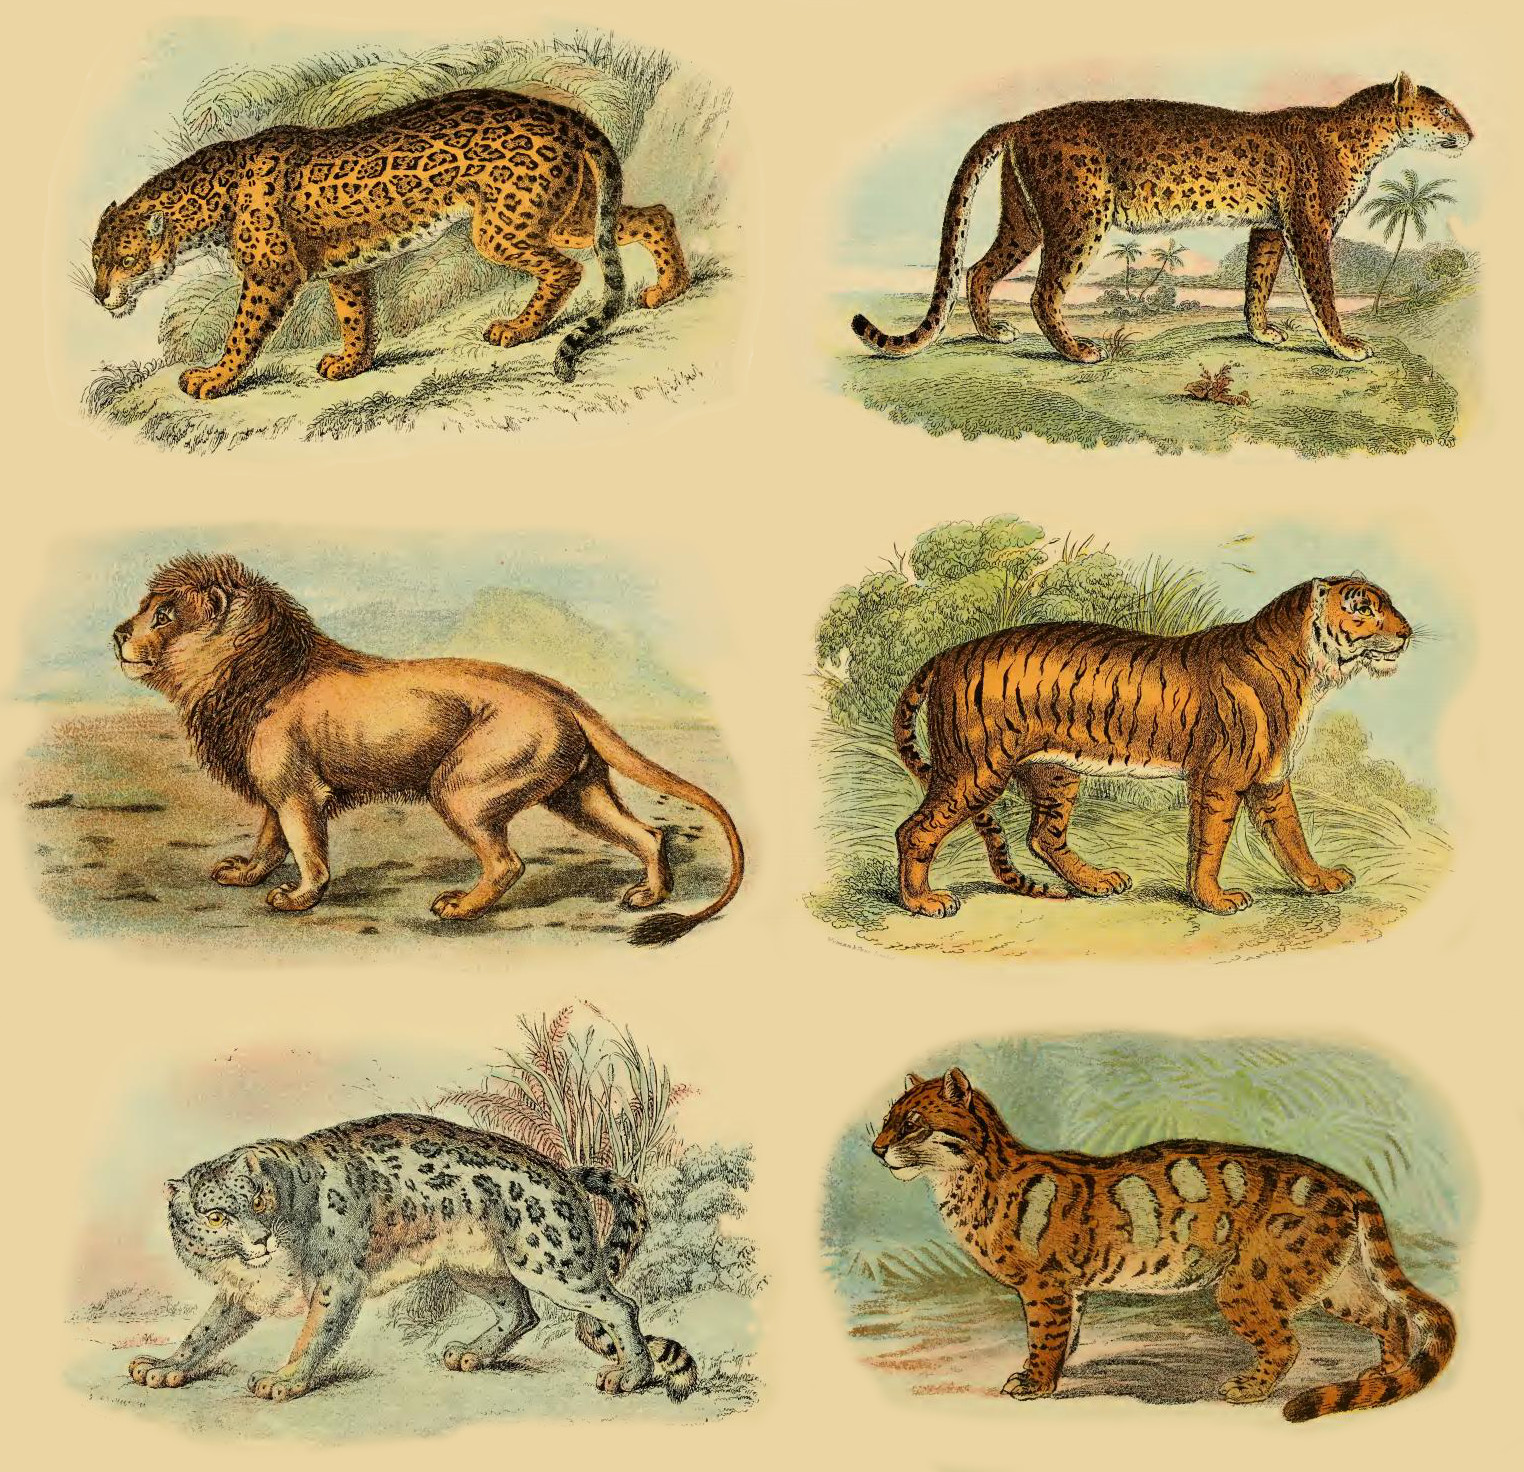 https://upload.wikimedia.org/wikipedia/commons/e/e8/Lydekker_-_Pantherinae_collage.jpg